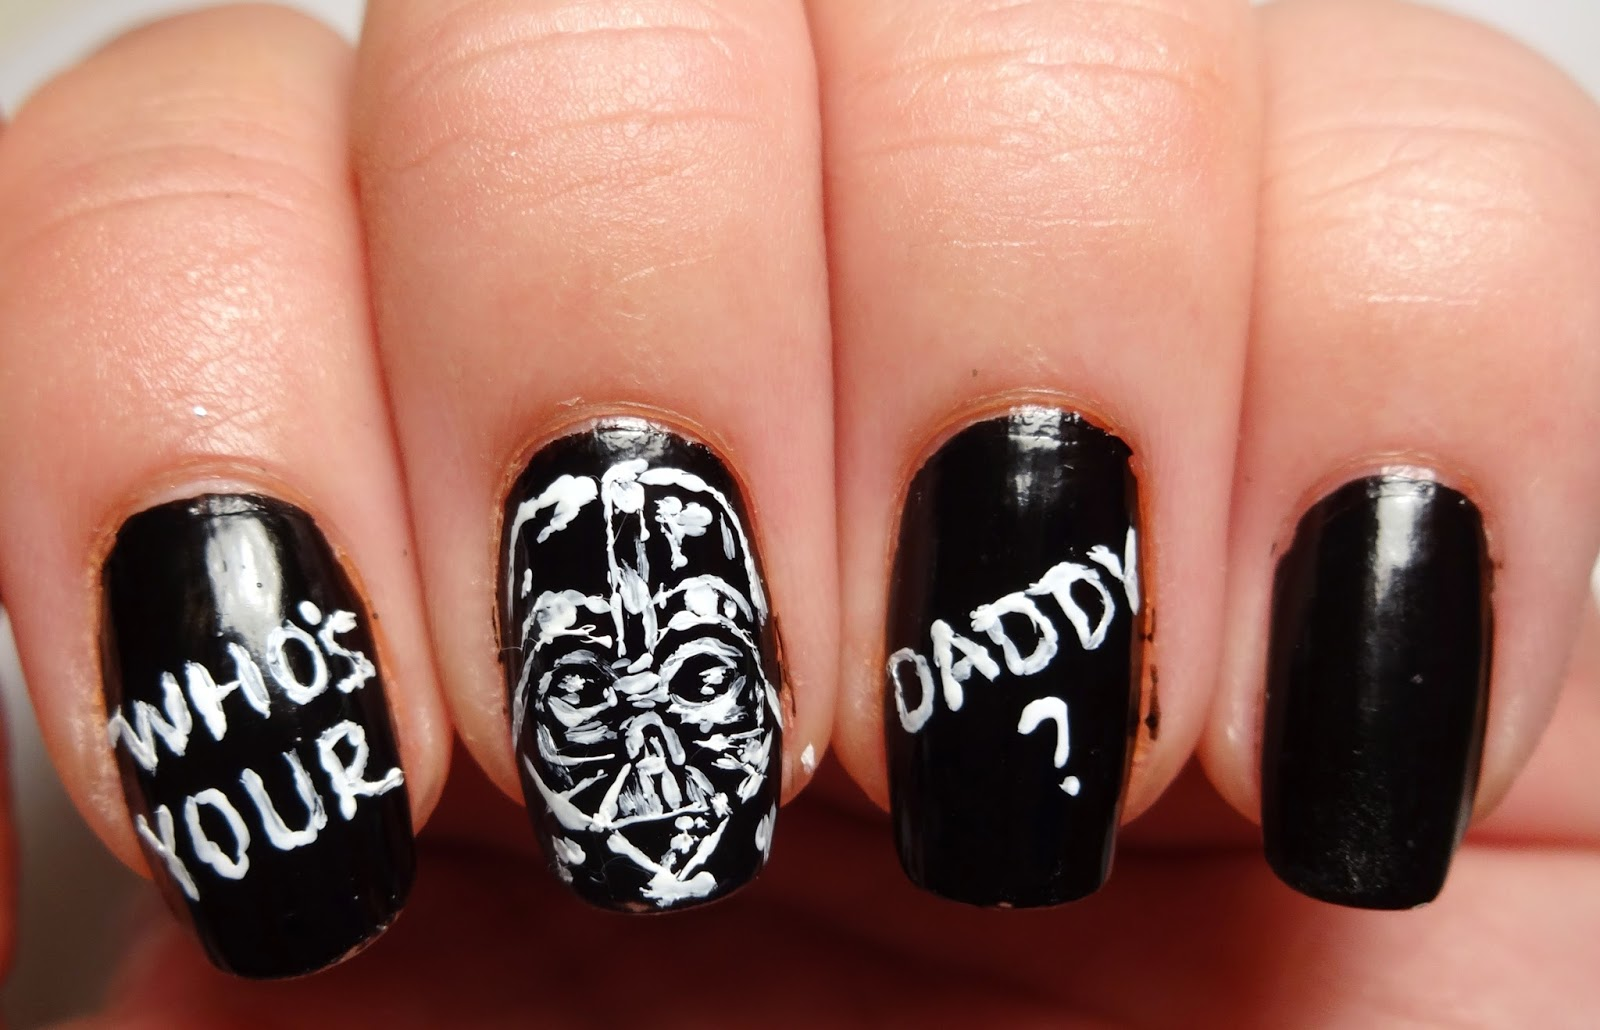 Who's Your Daddy Nails